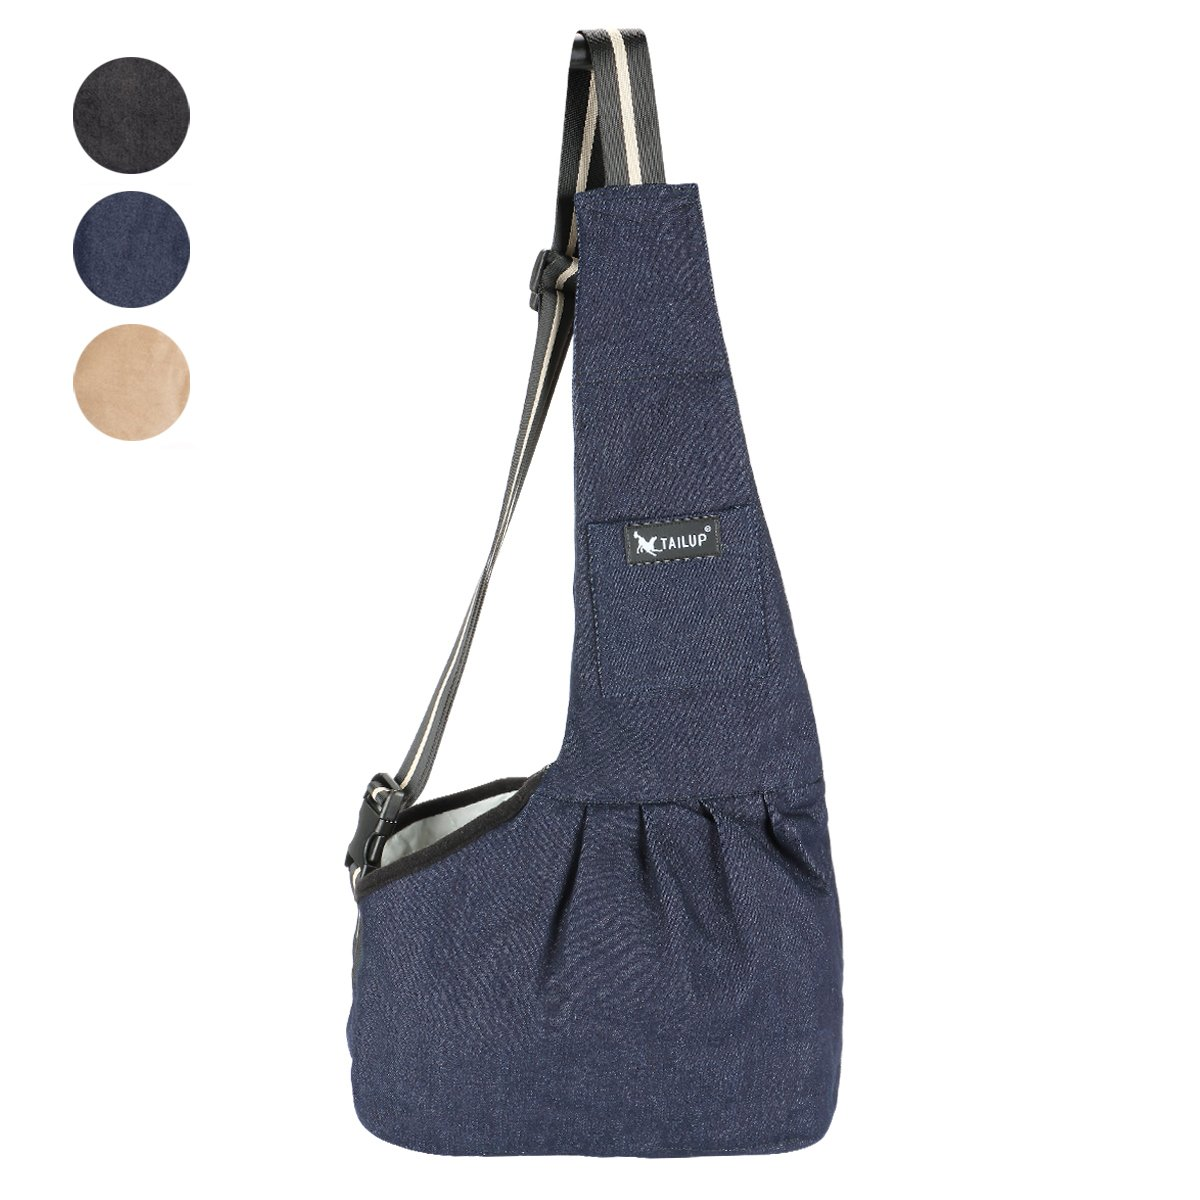 TAIL UP Pet Carrier Sling, Shoulder Bag with Adjustable Slide Strap for Small & Medium Dogs, Cats or Rabbits, Hands-Free Outdoor Pet Carrier, Puppy Carrier Tragvel Bag (S, BLUE)